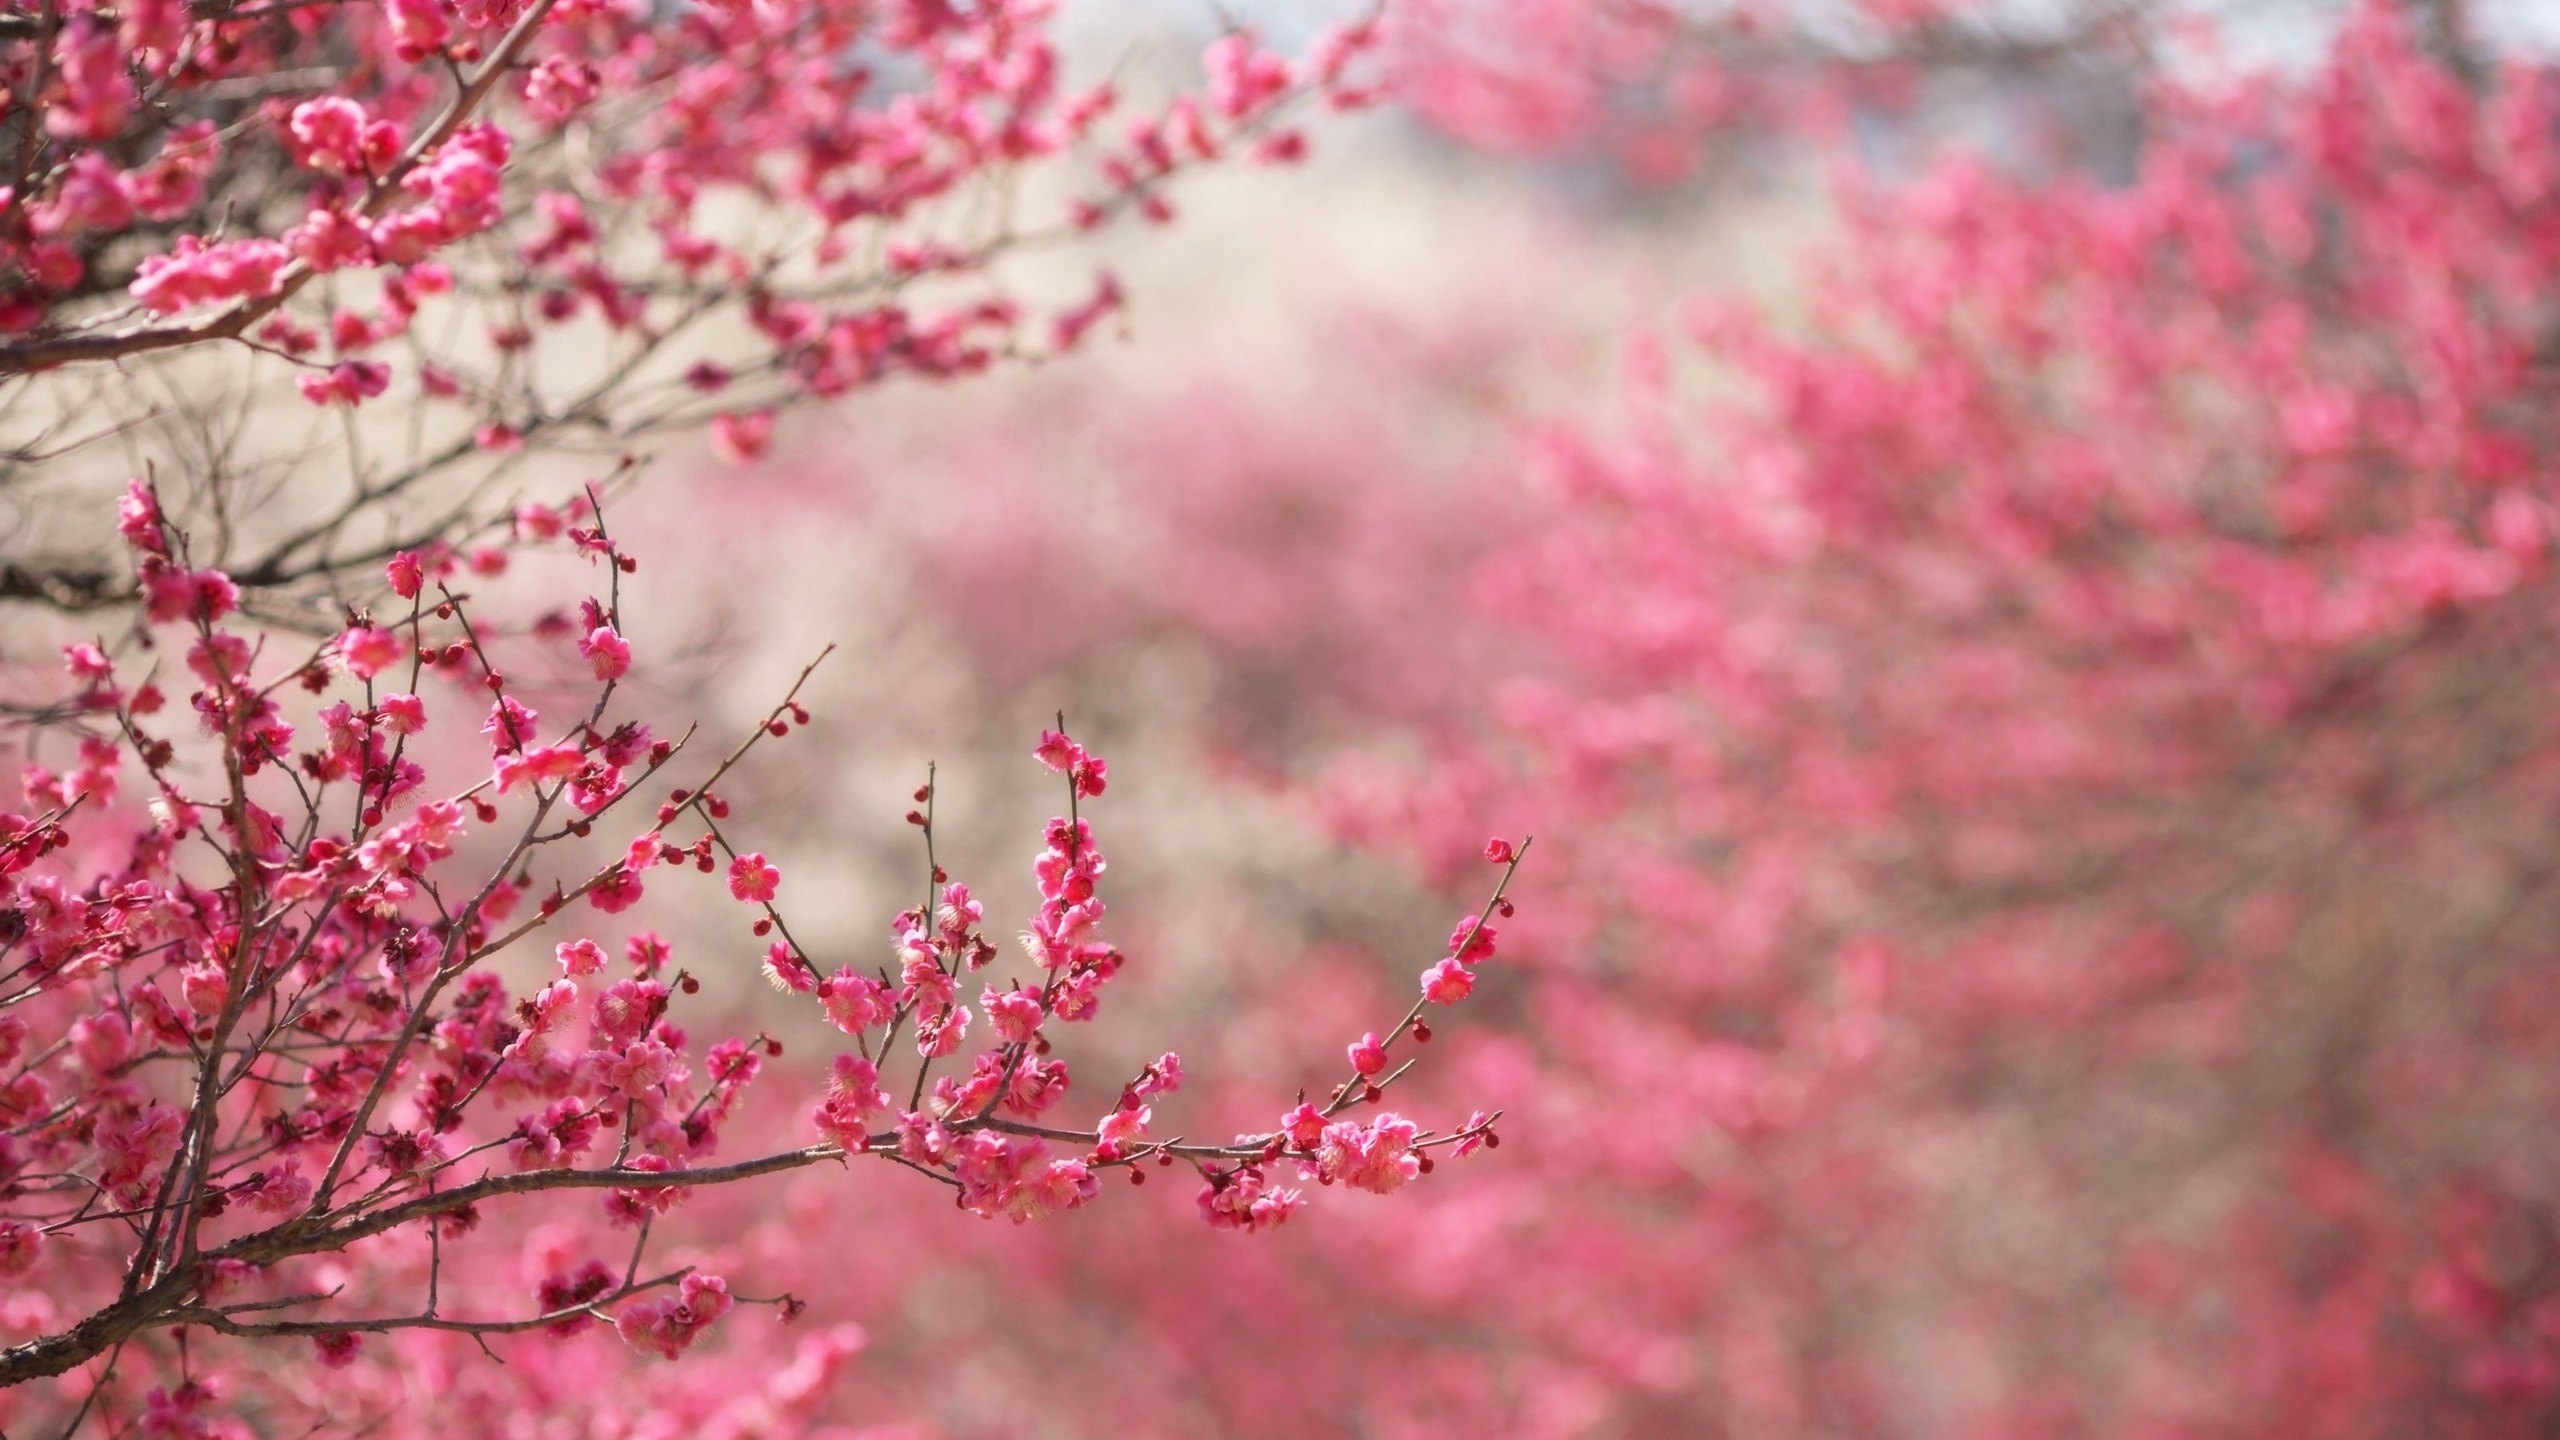 <b>2560x1440 Pink</b> flowers hd Wallpaper